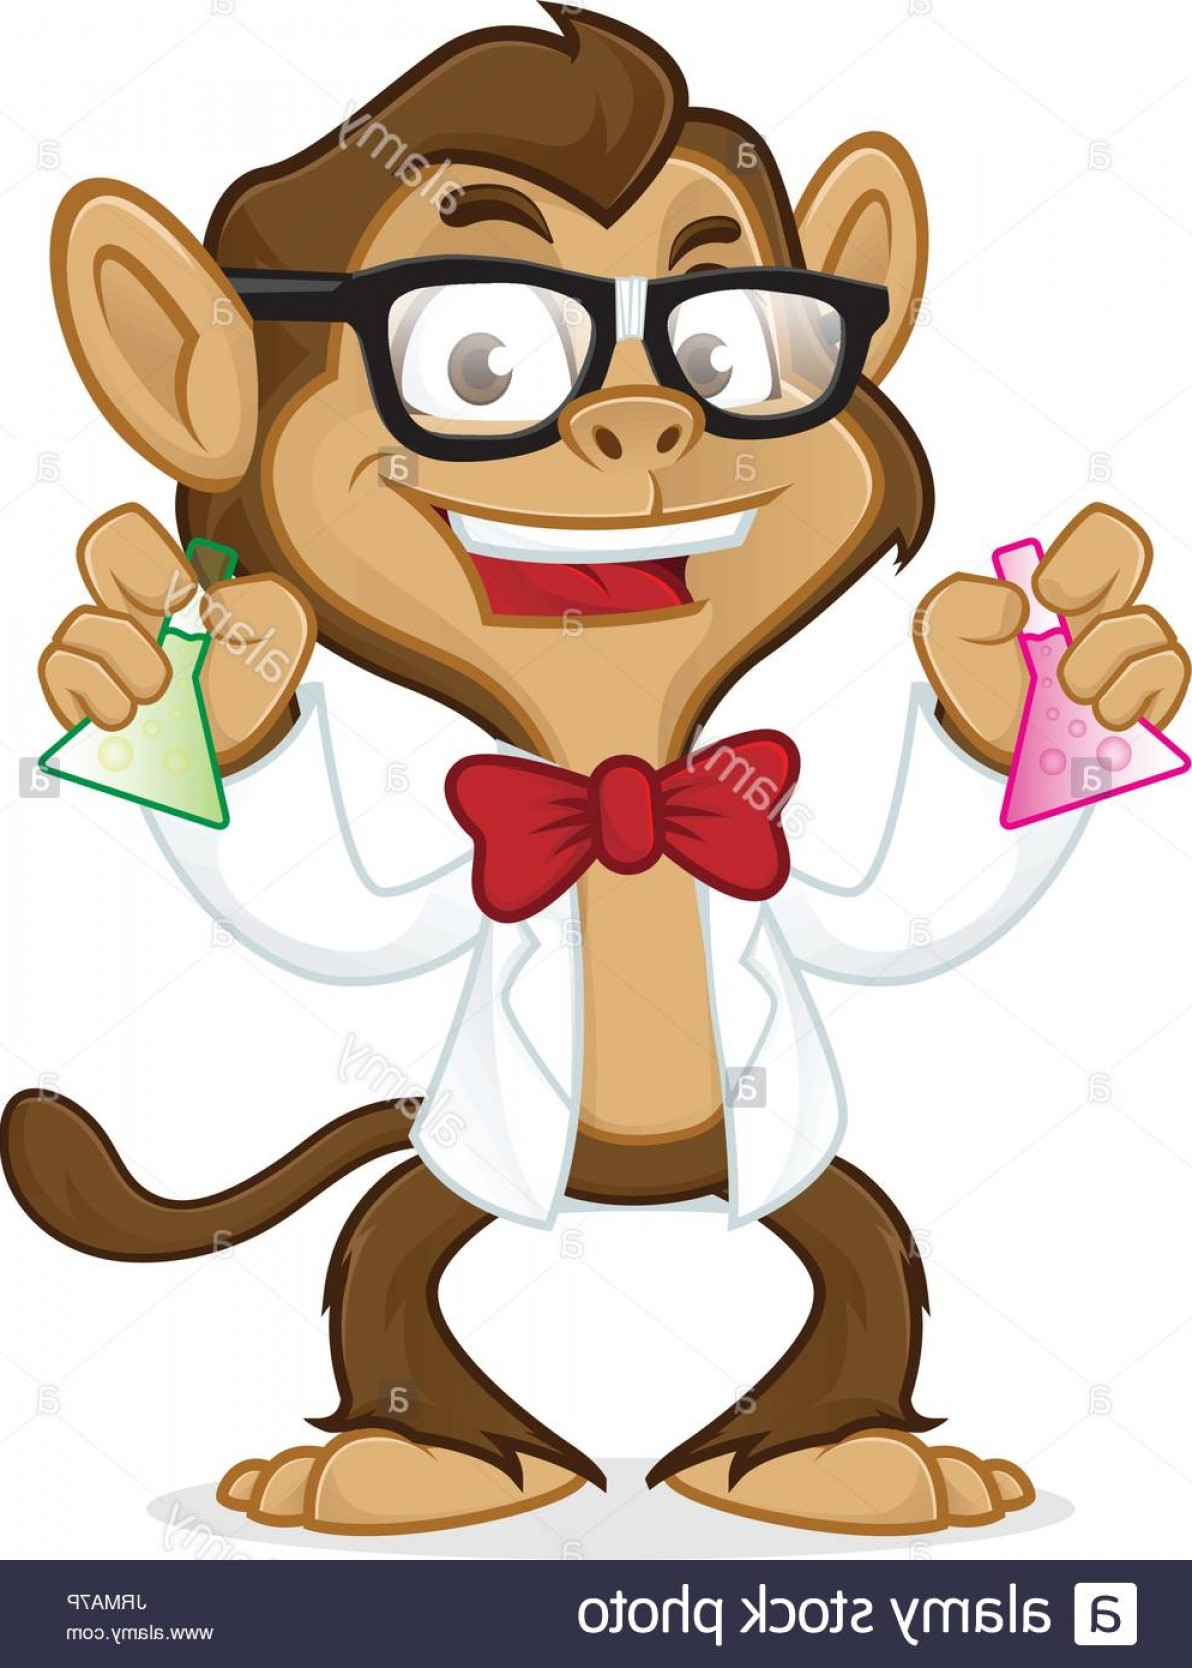 Lab Coat Cartoon Vector: Stock Photo Chimp Cartoon Mascot Wearing Lab Coat And Glasses Isolated In White